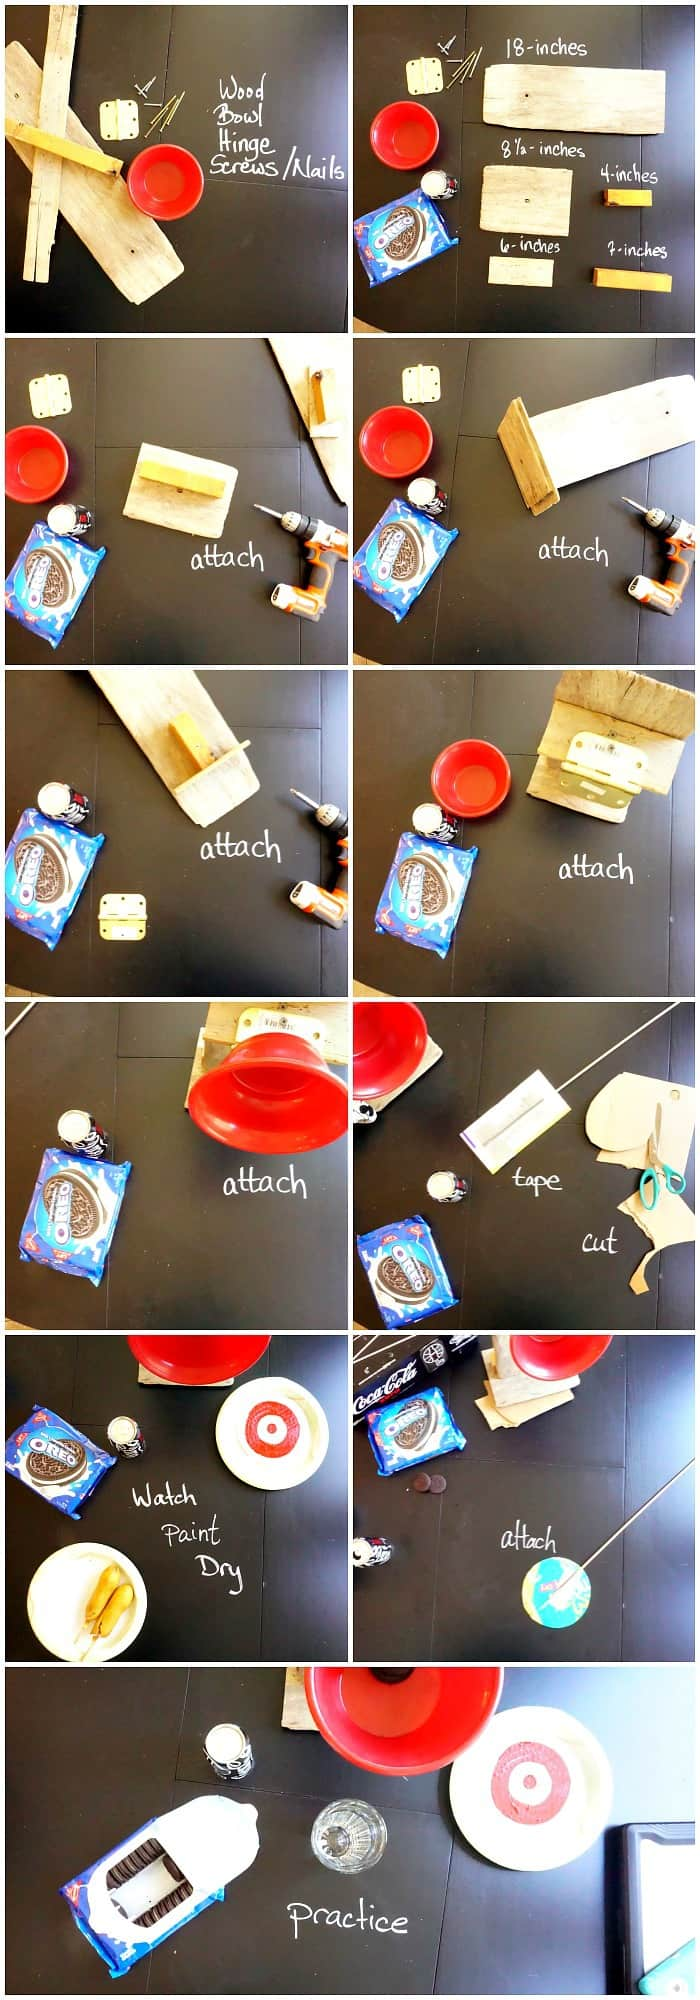 easy way to make a miniature dunking booth for a party